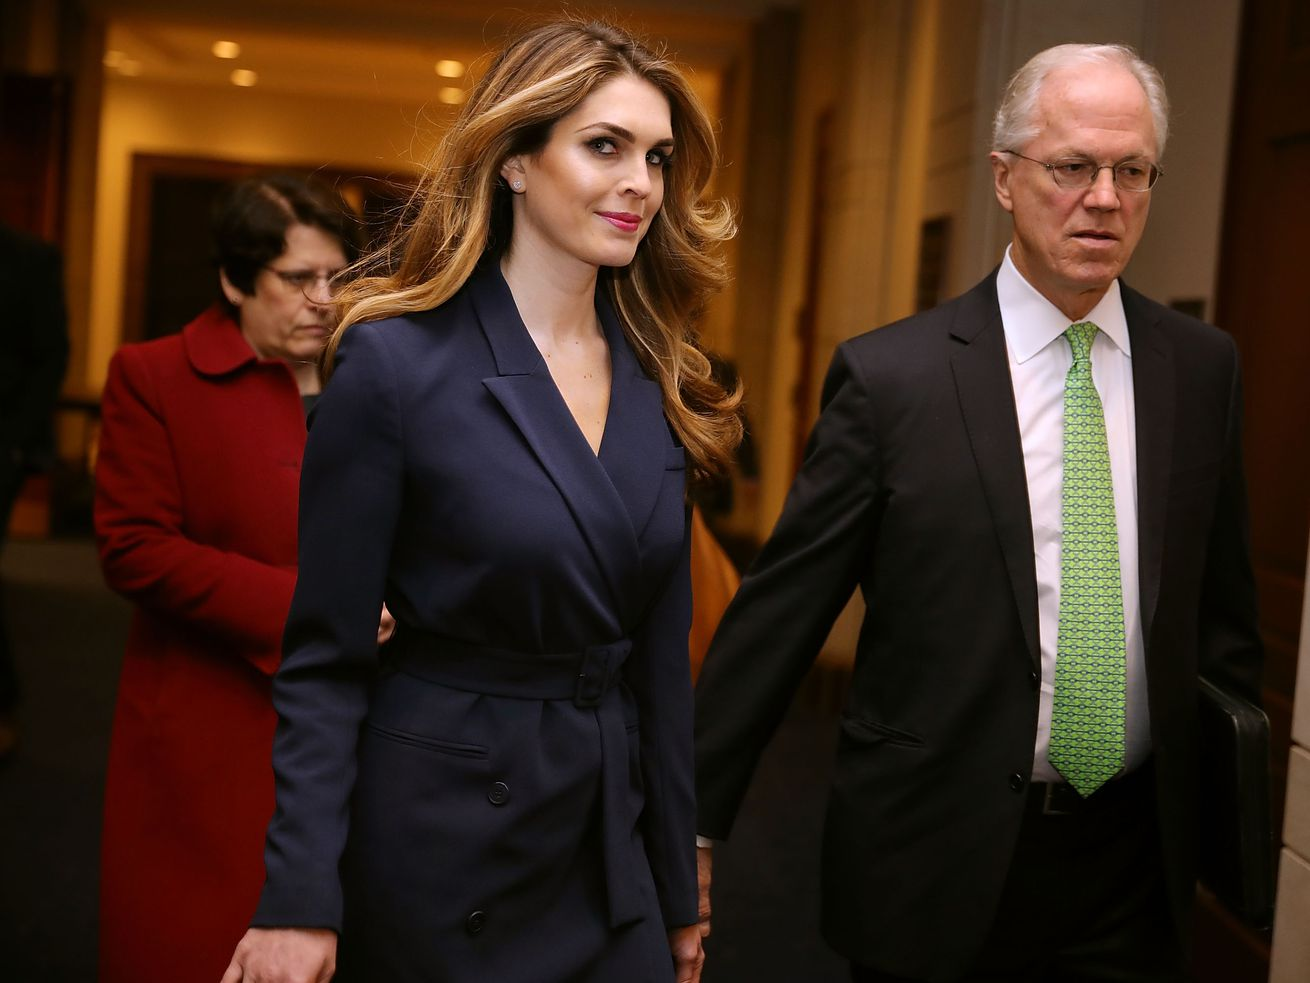 White House Communications Director and presidential advisor Hope Hicks arrives at the Capitol Visitors Center February 27, 2018, in Washington, DC.